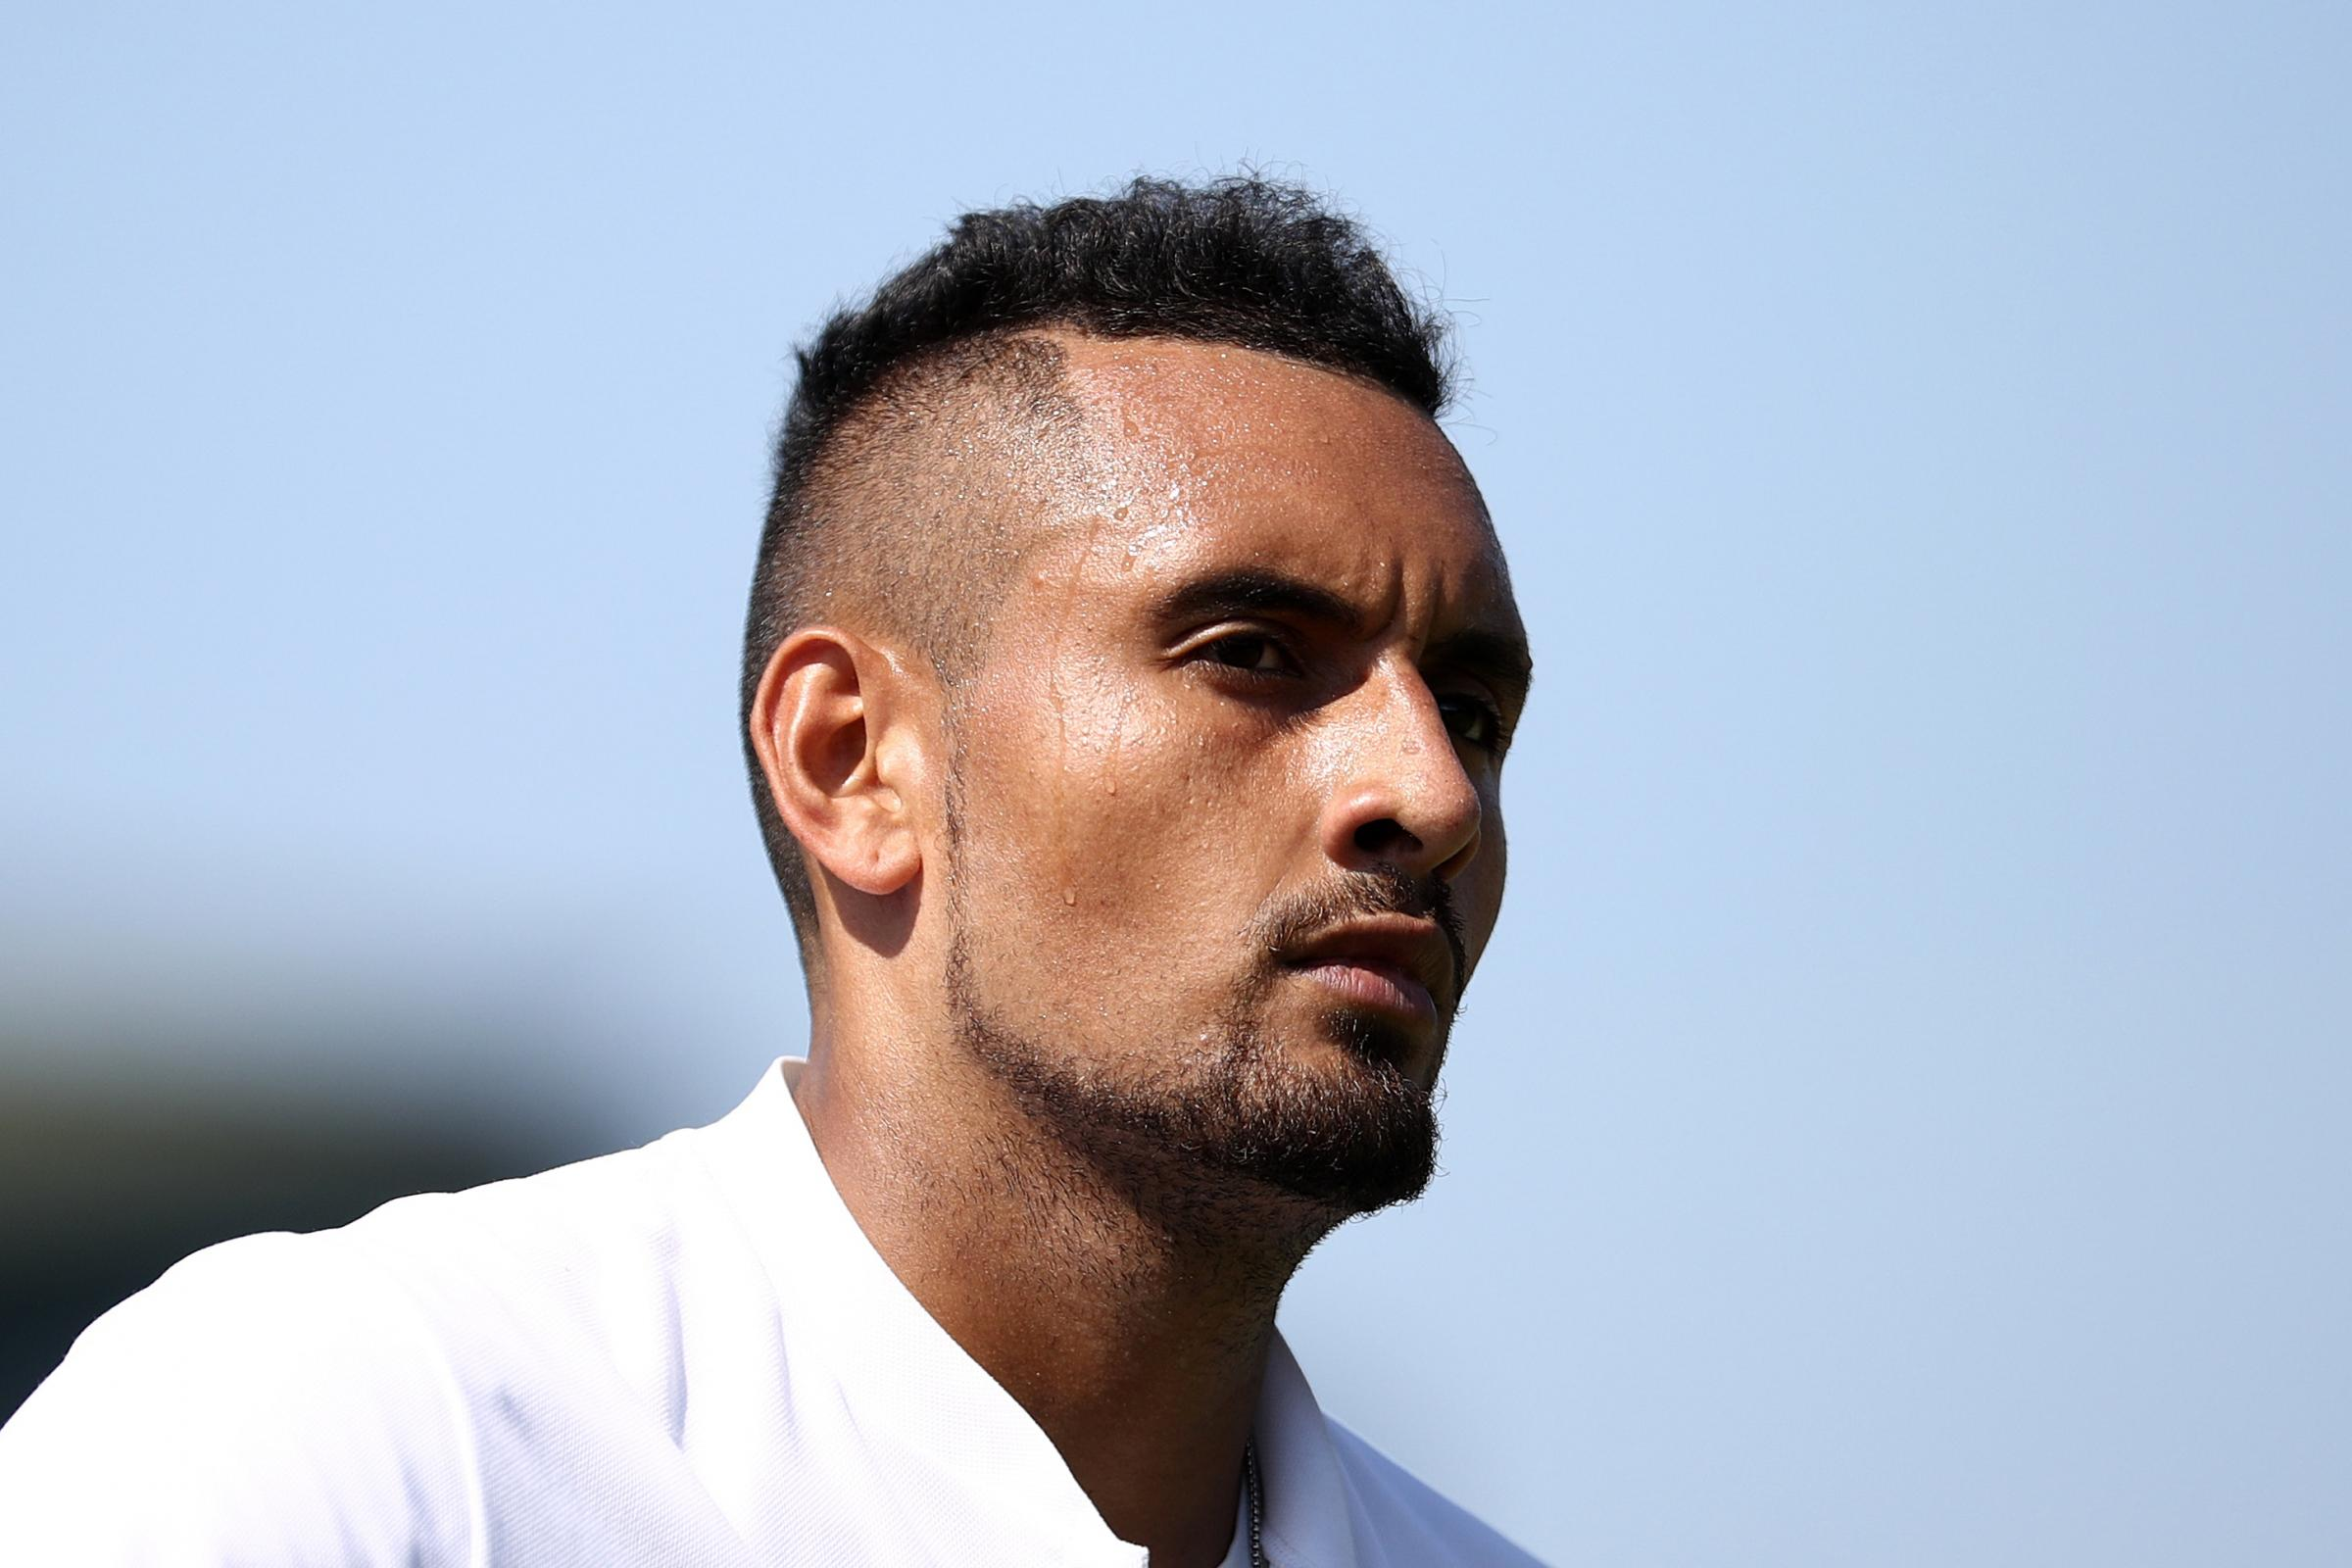 Nick Kyrgios has opened up about his dislike for Novak Djokovic and Rafael Nadal